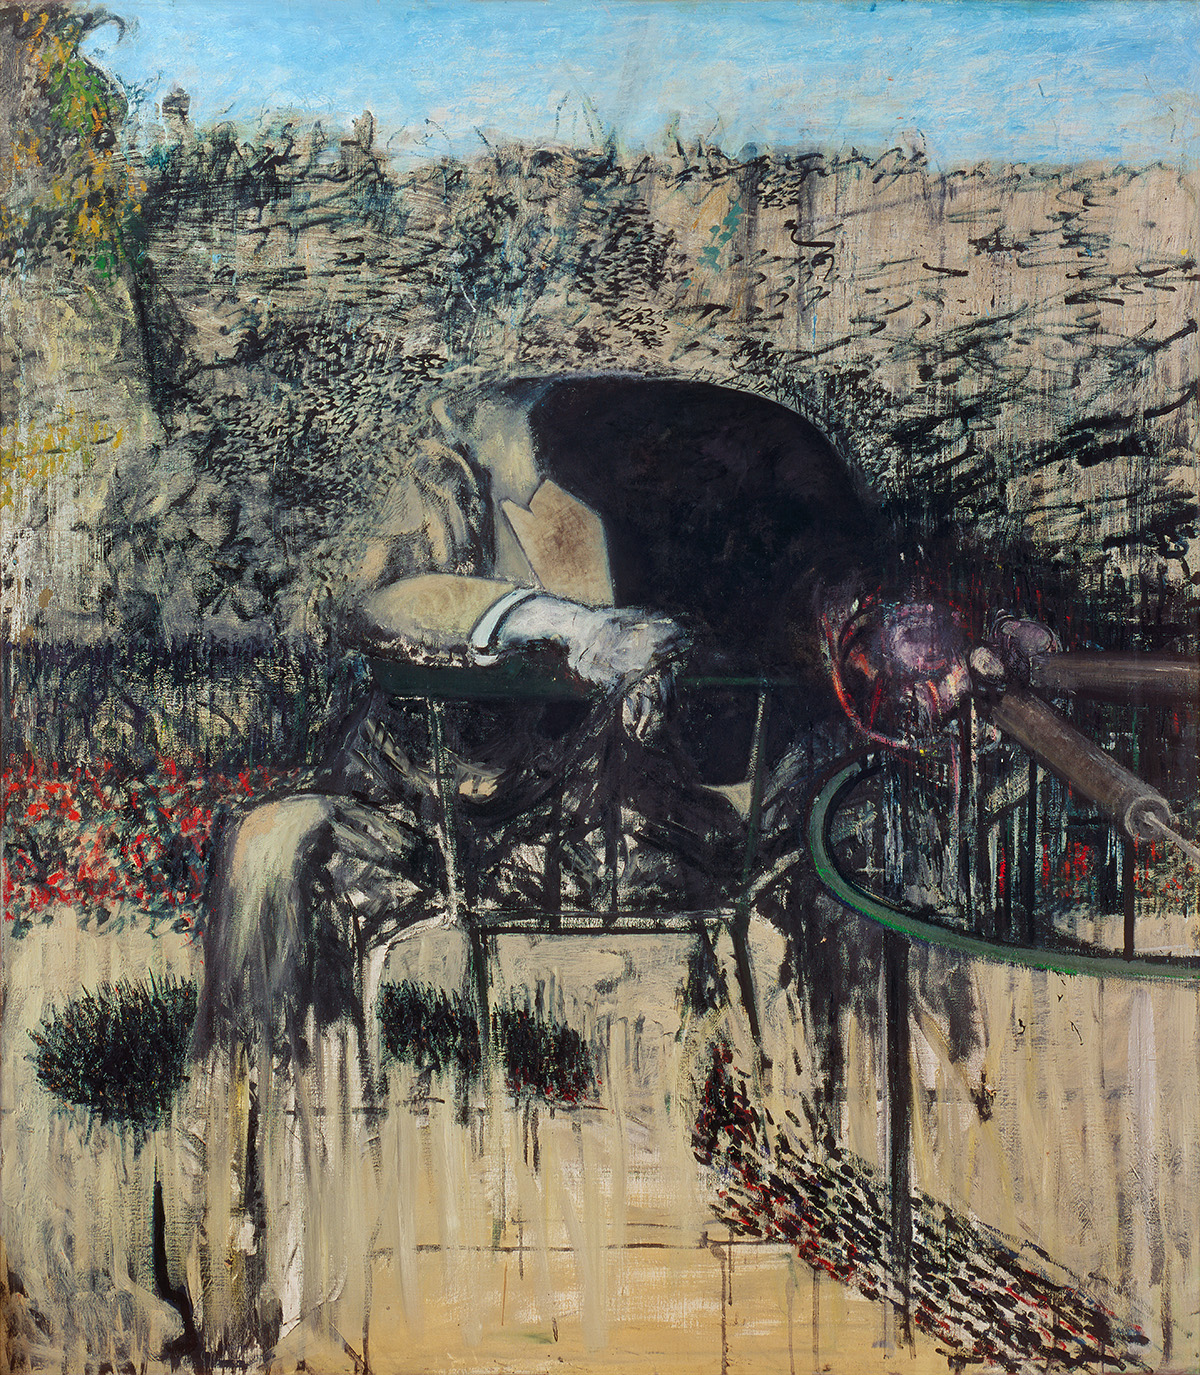 Francis Bacon, Figure in a Landscape. Oil, pastel and dust on canvas. CR number 45-05. © The Estate of Francis Bacon / DACS London 2020. All rights reserved.